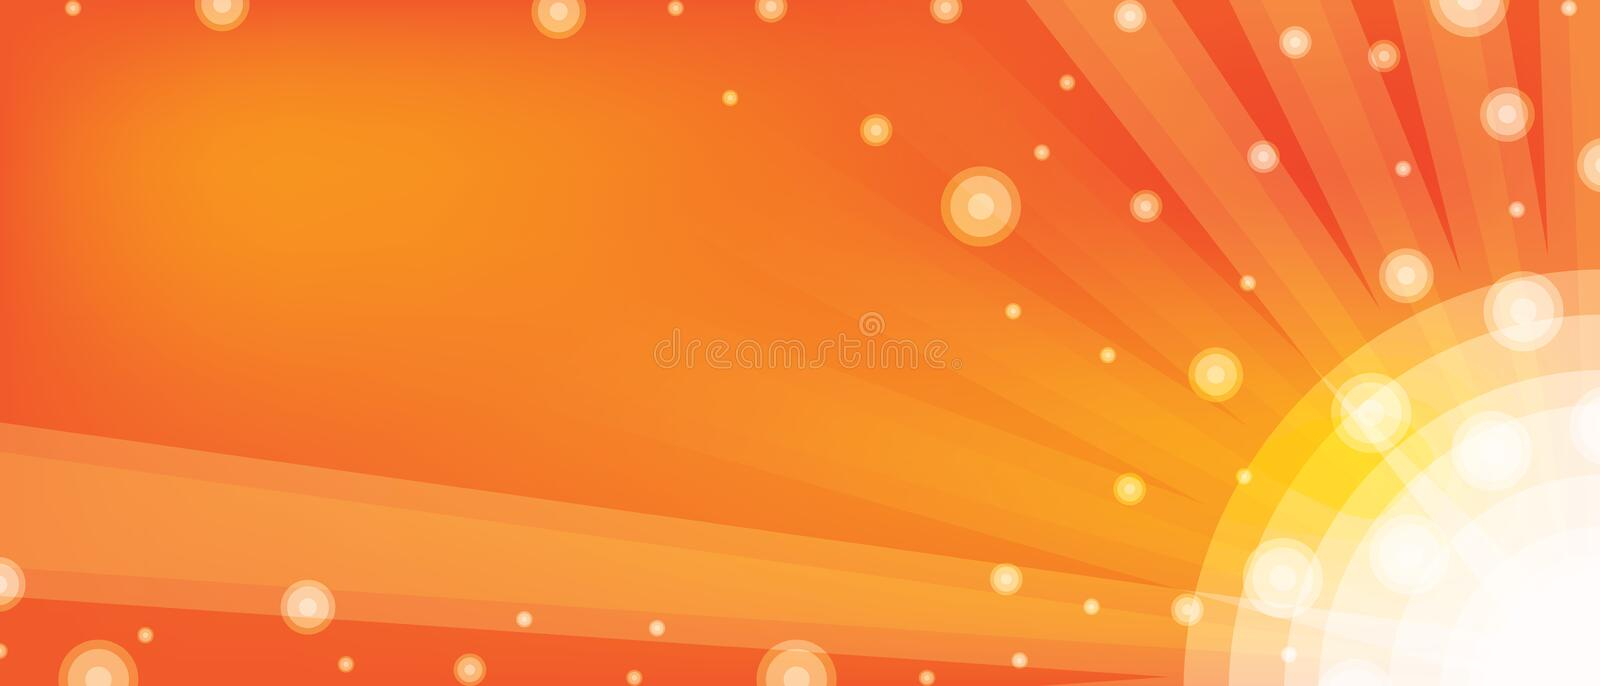 Banner ball orange stock illustration